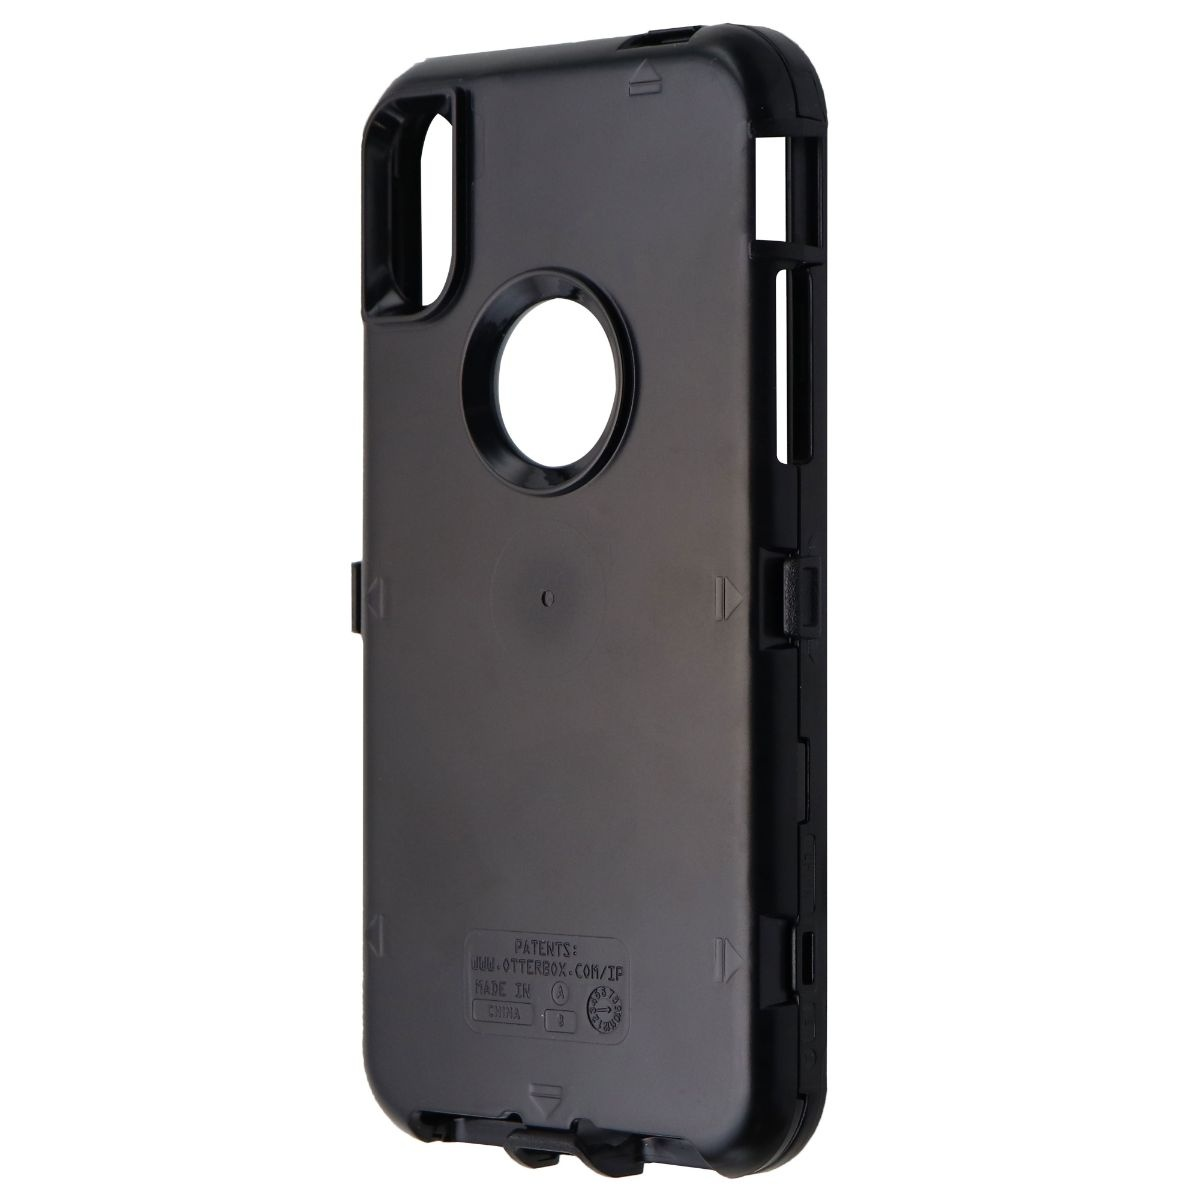 Otterbox Defender Series Replacement Interior Hardshell for iPhone X - Black